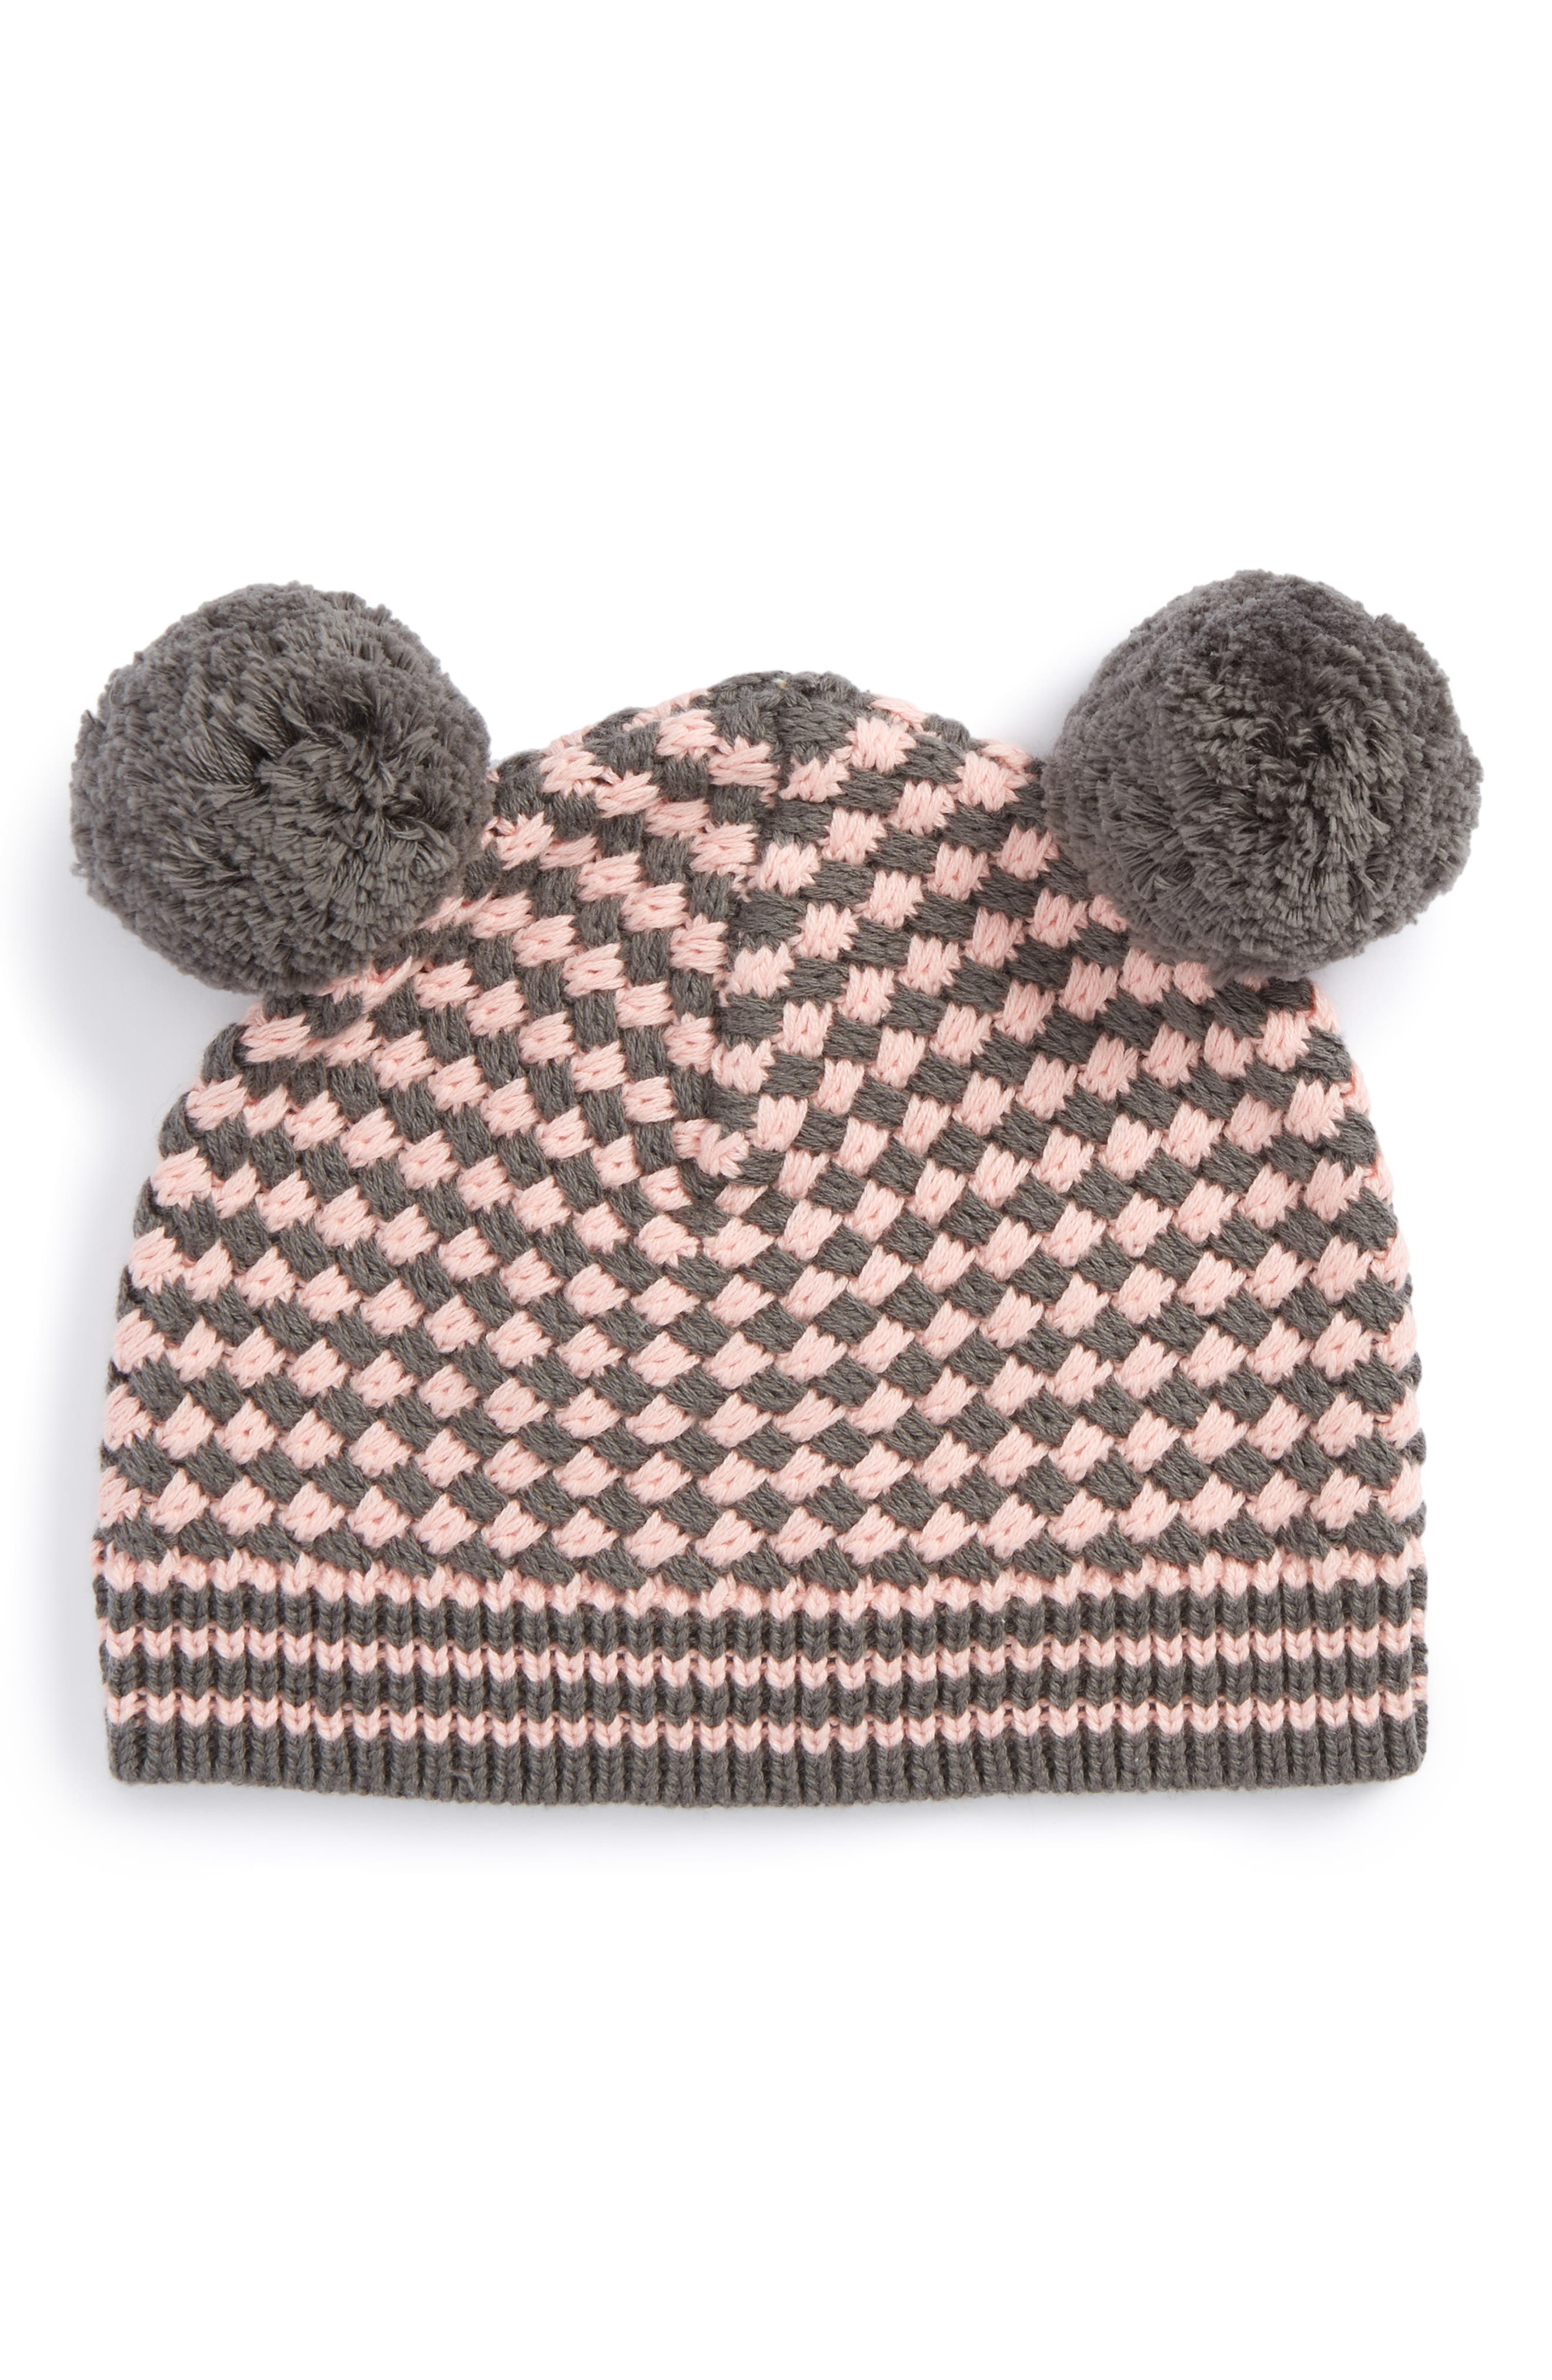 Alternate Image 1 Selected - Tucker + Tate Leah Double Pompom Knit Hat (Baby Girls & Toddler Girls)